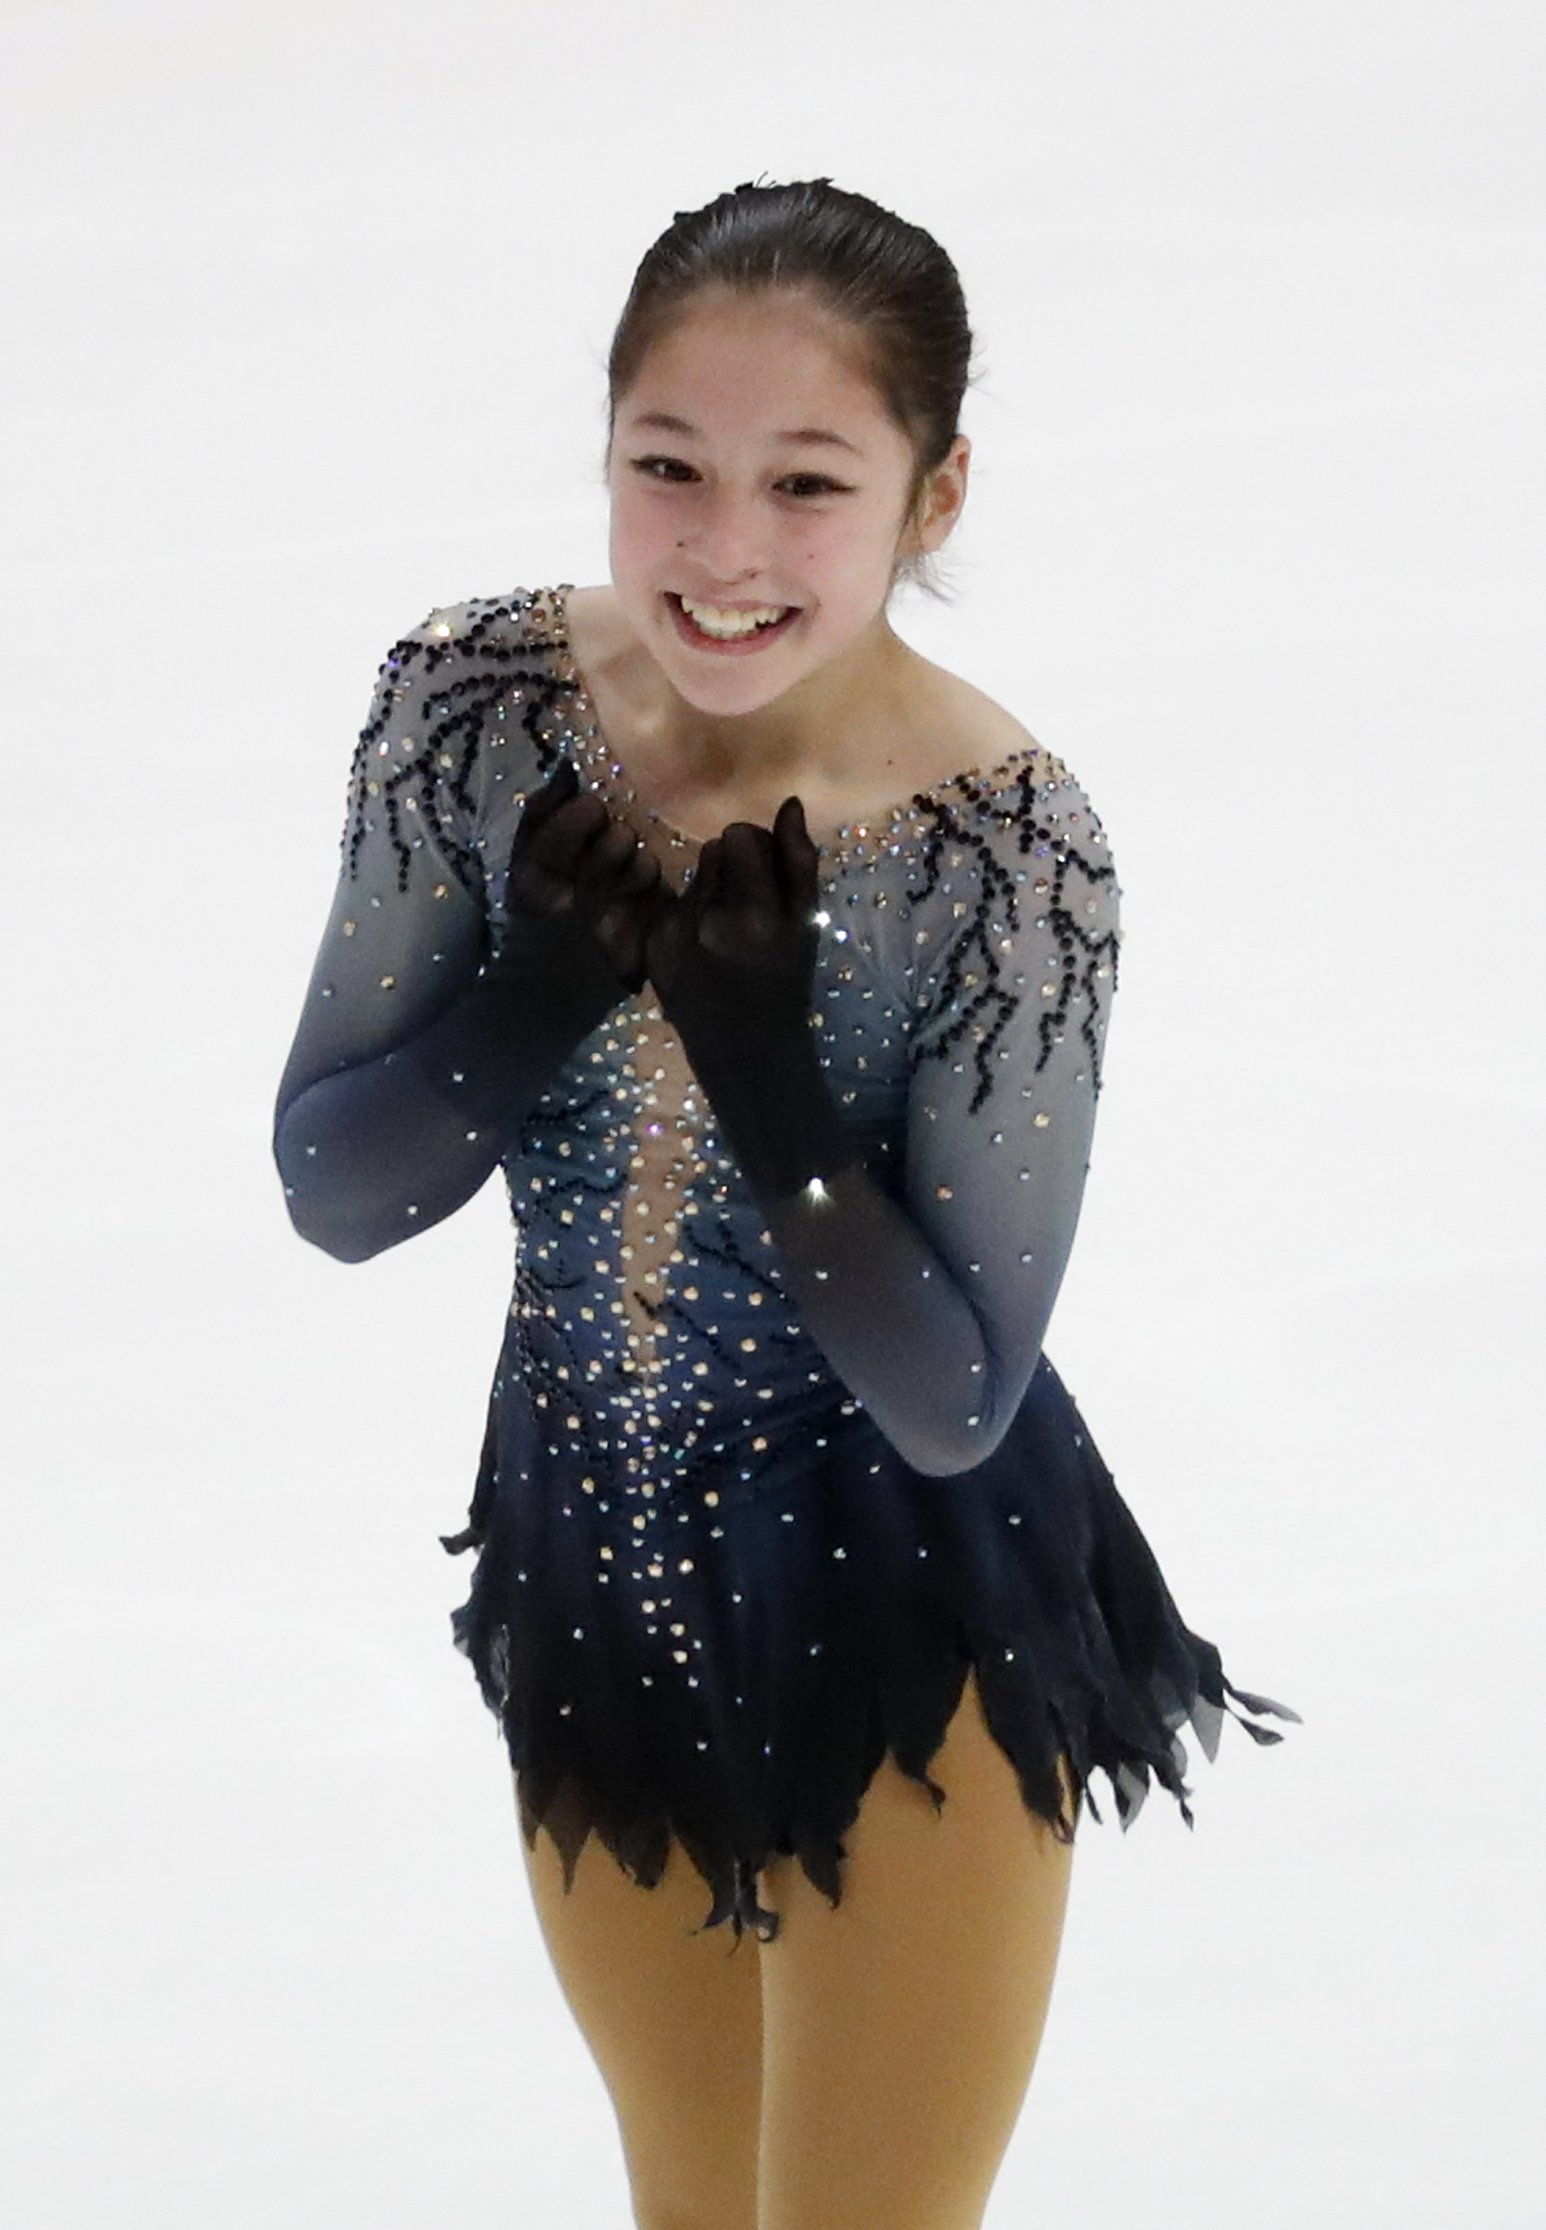 Liu takes women's title at nationals at age 13